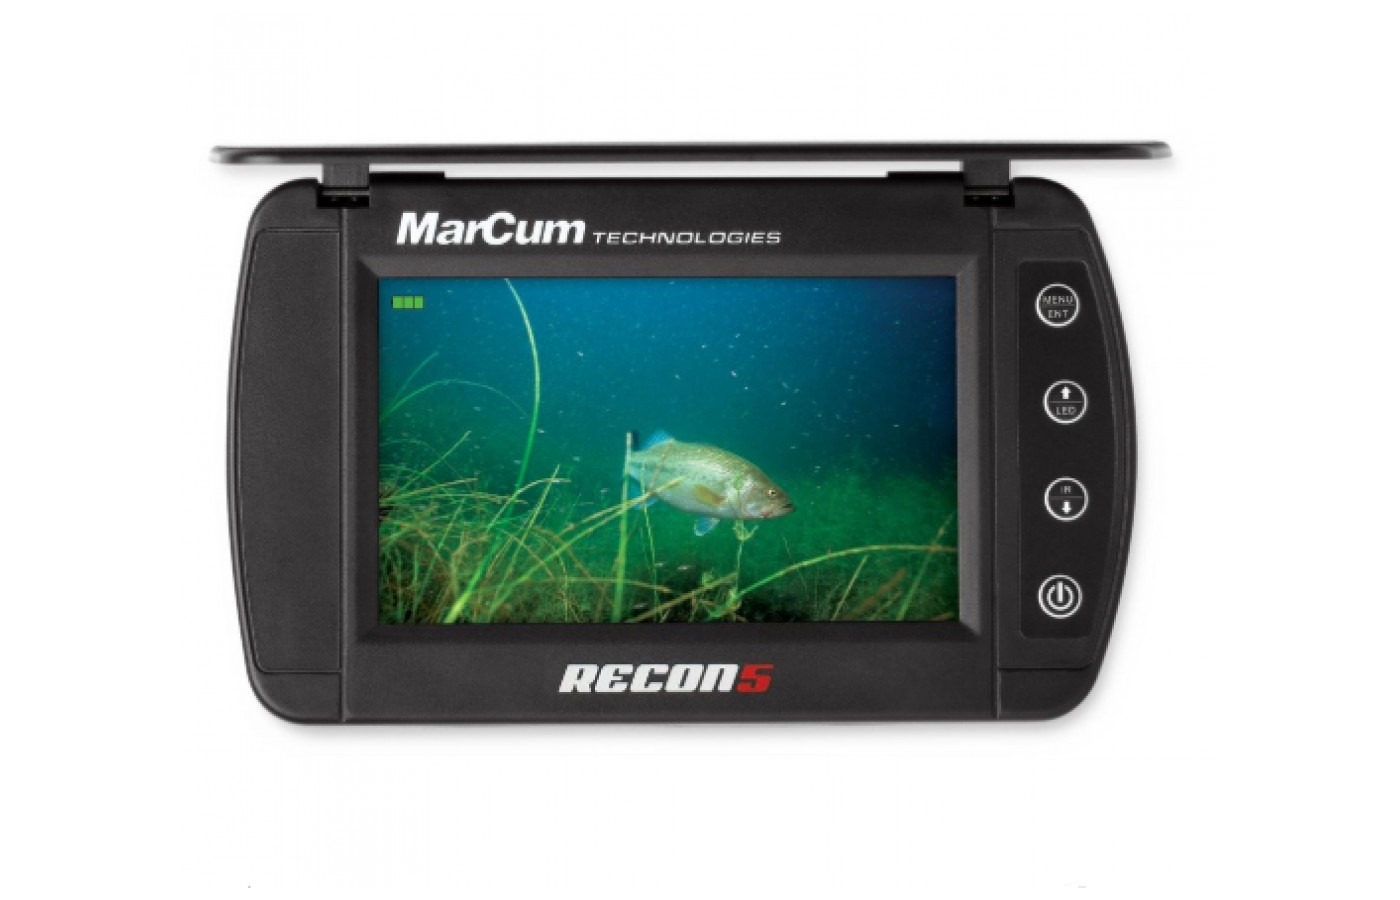 The MarCum Recon 5 is an affordable underwater fish viewing camera.